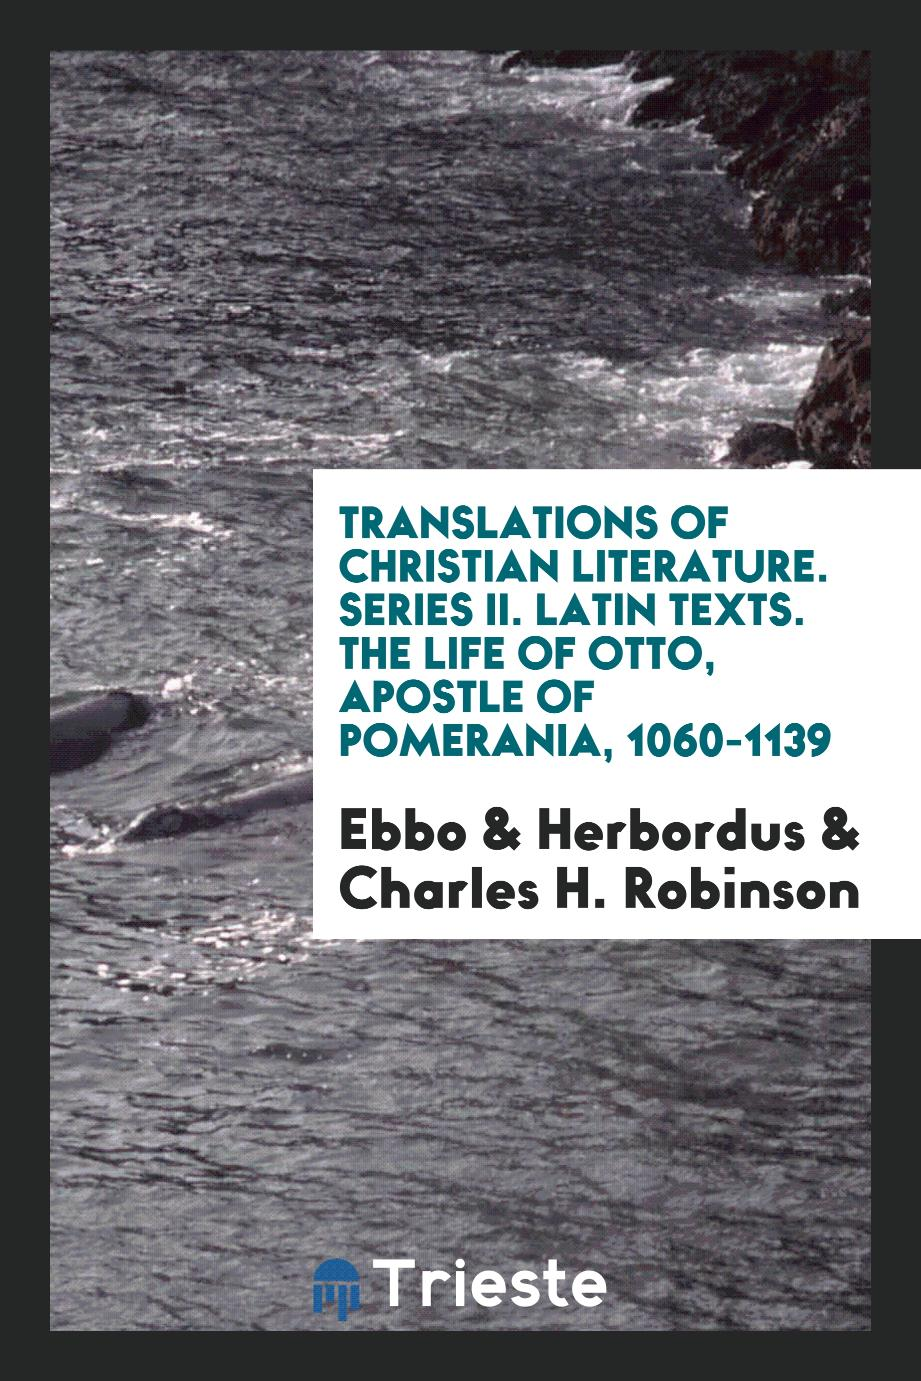 Translations of christian literature. Series II. Latin Texts. The life of Otto, apostle of Pomerania, 1060-1139